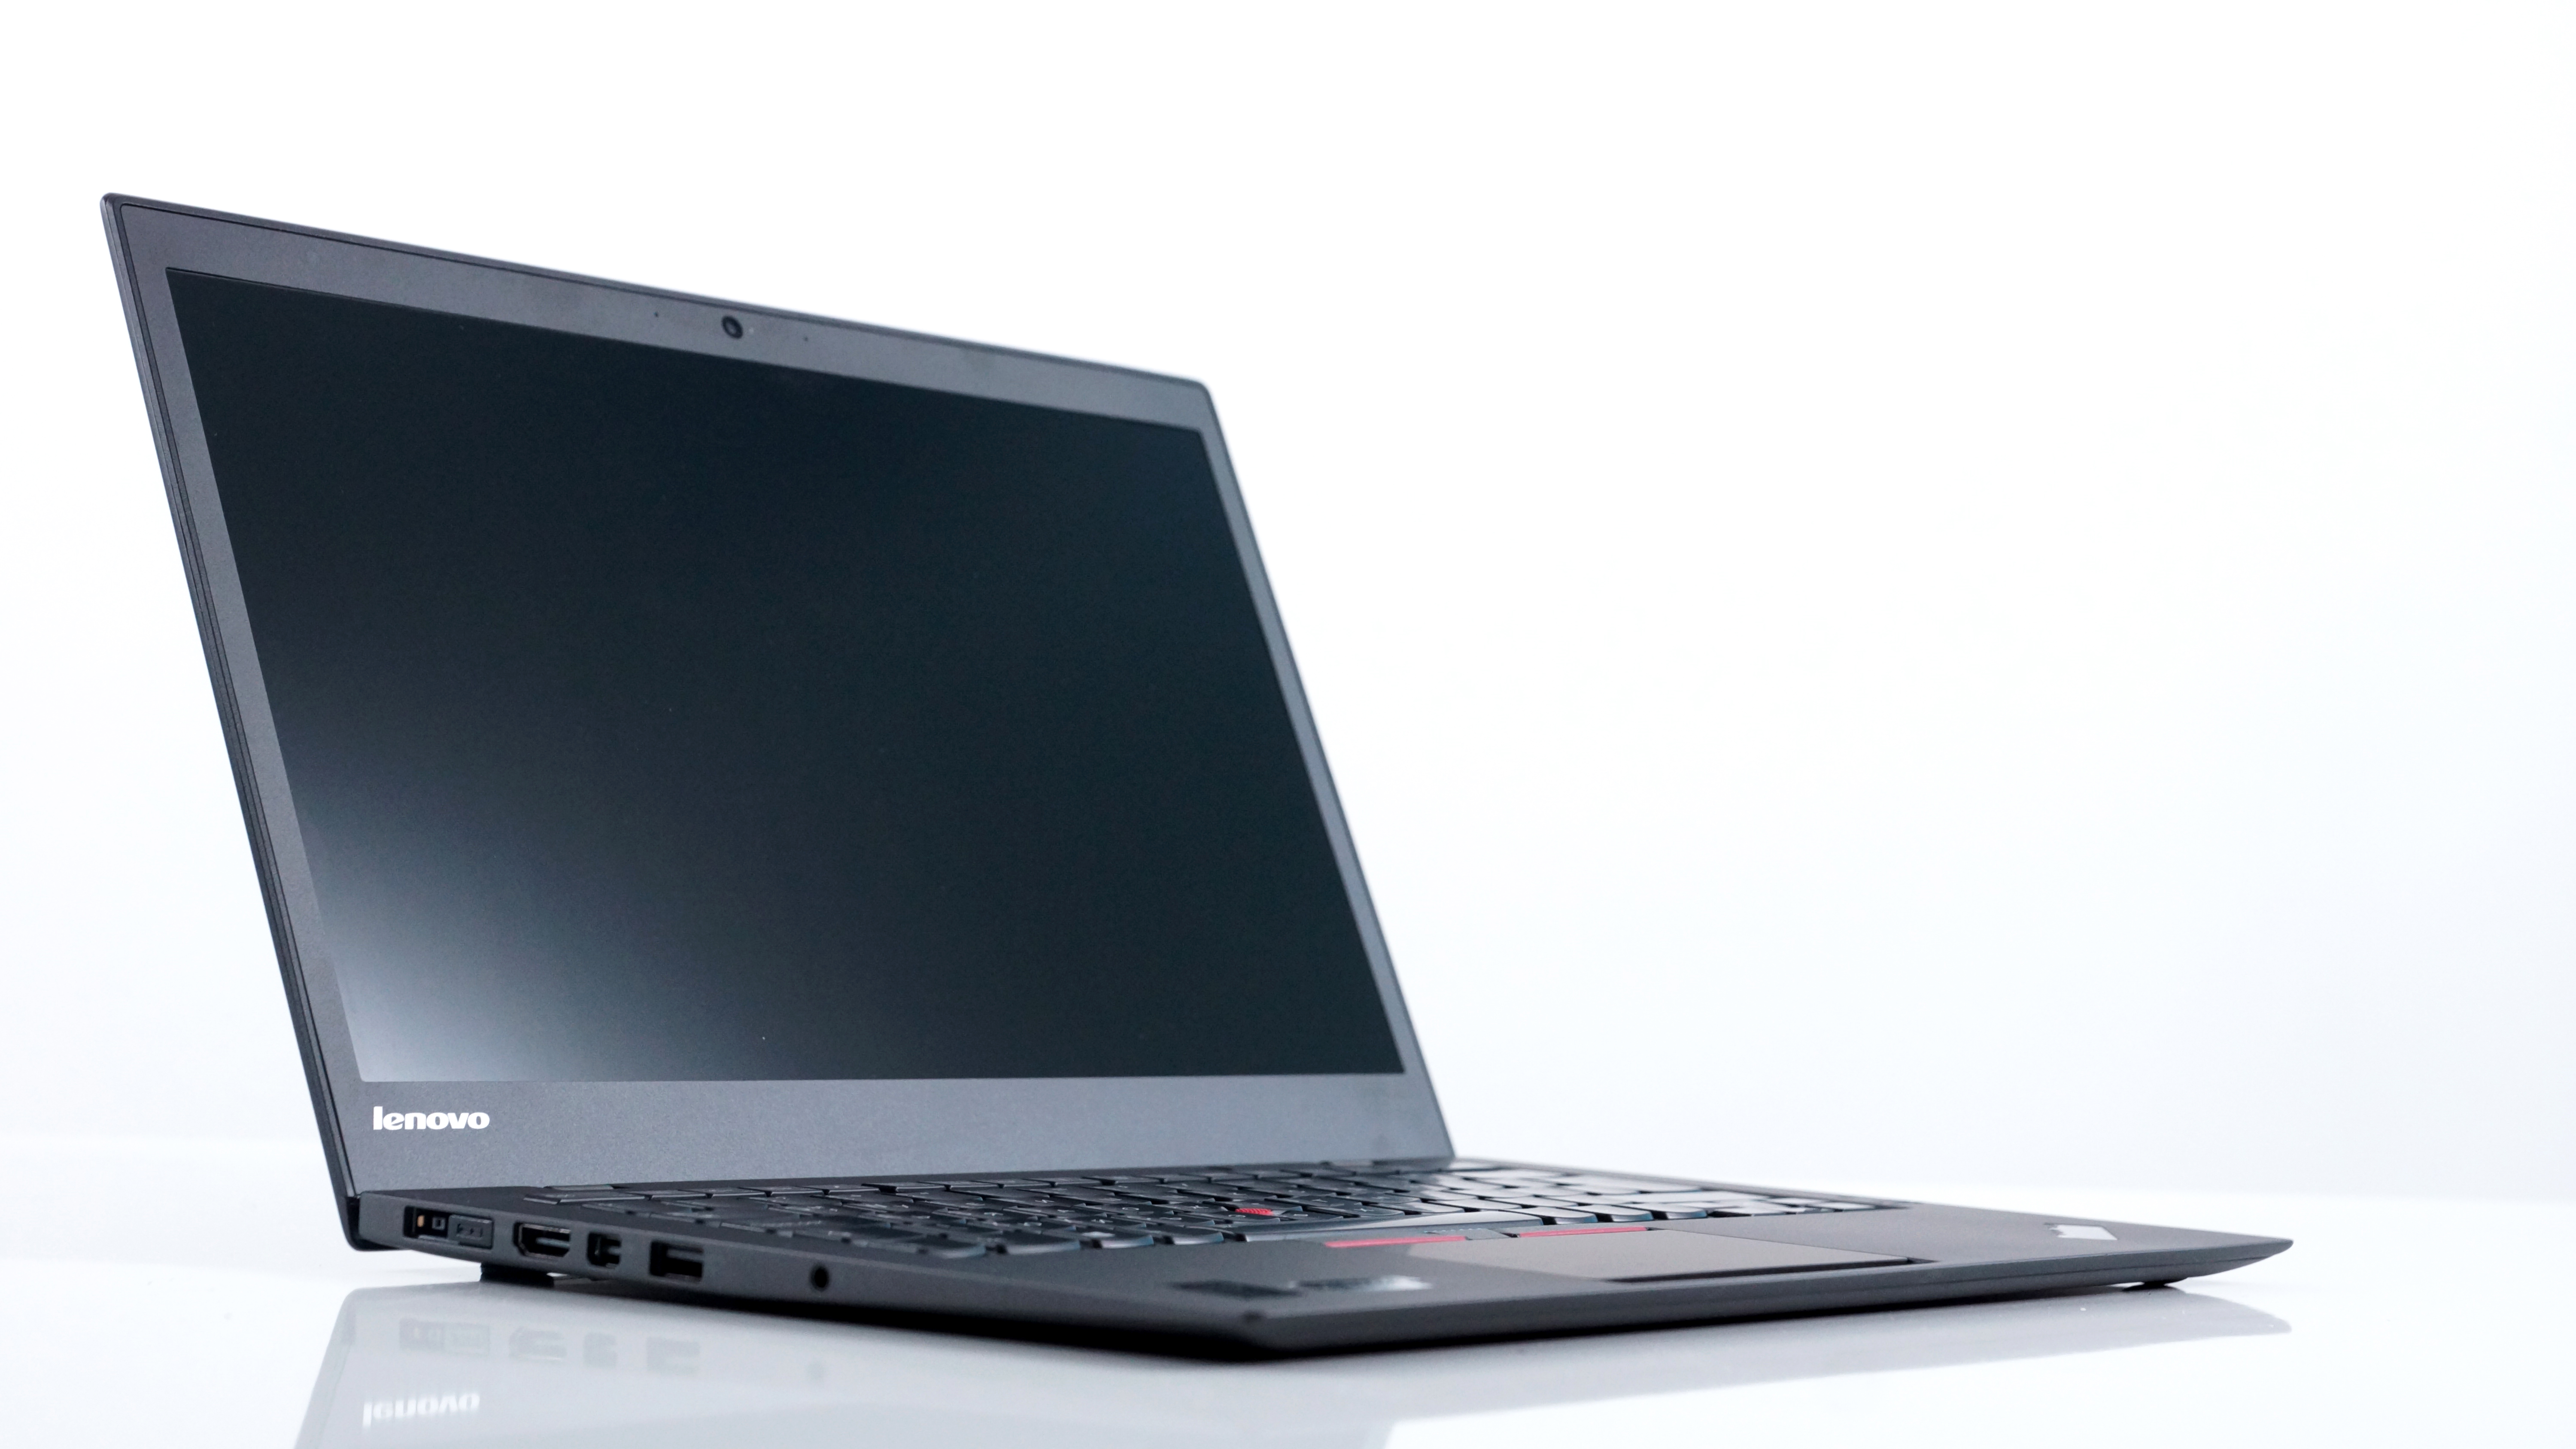 Lenovo X1 Carbon with Broadwell CPU – hands-on and first